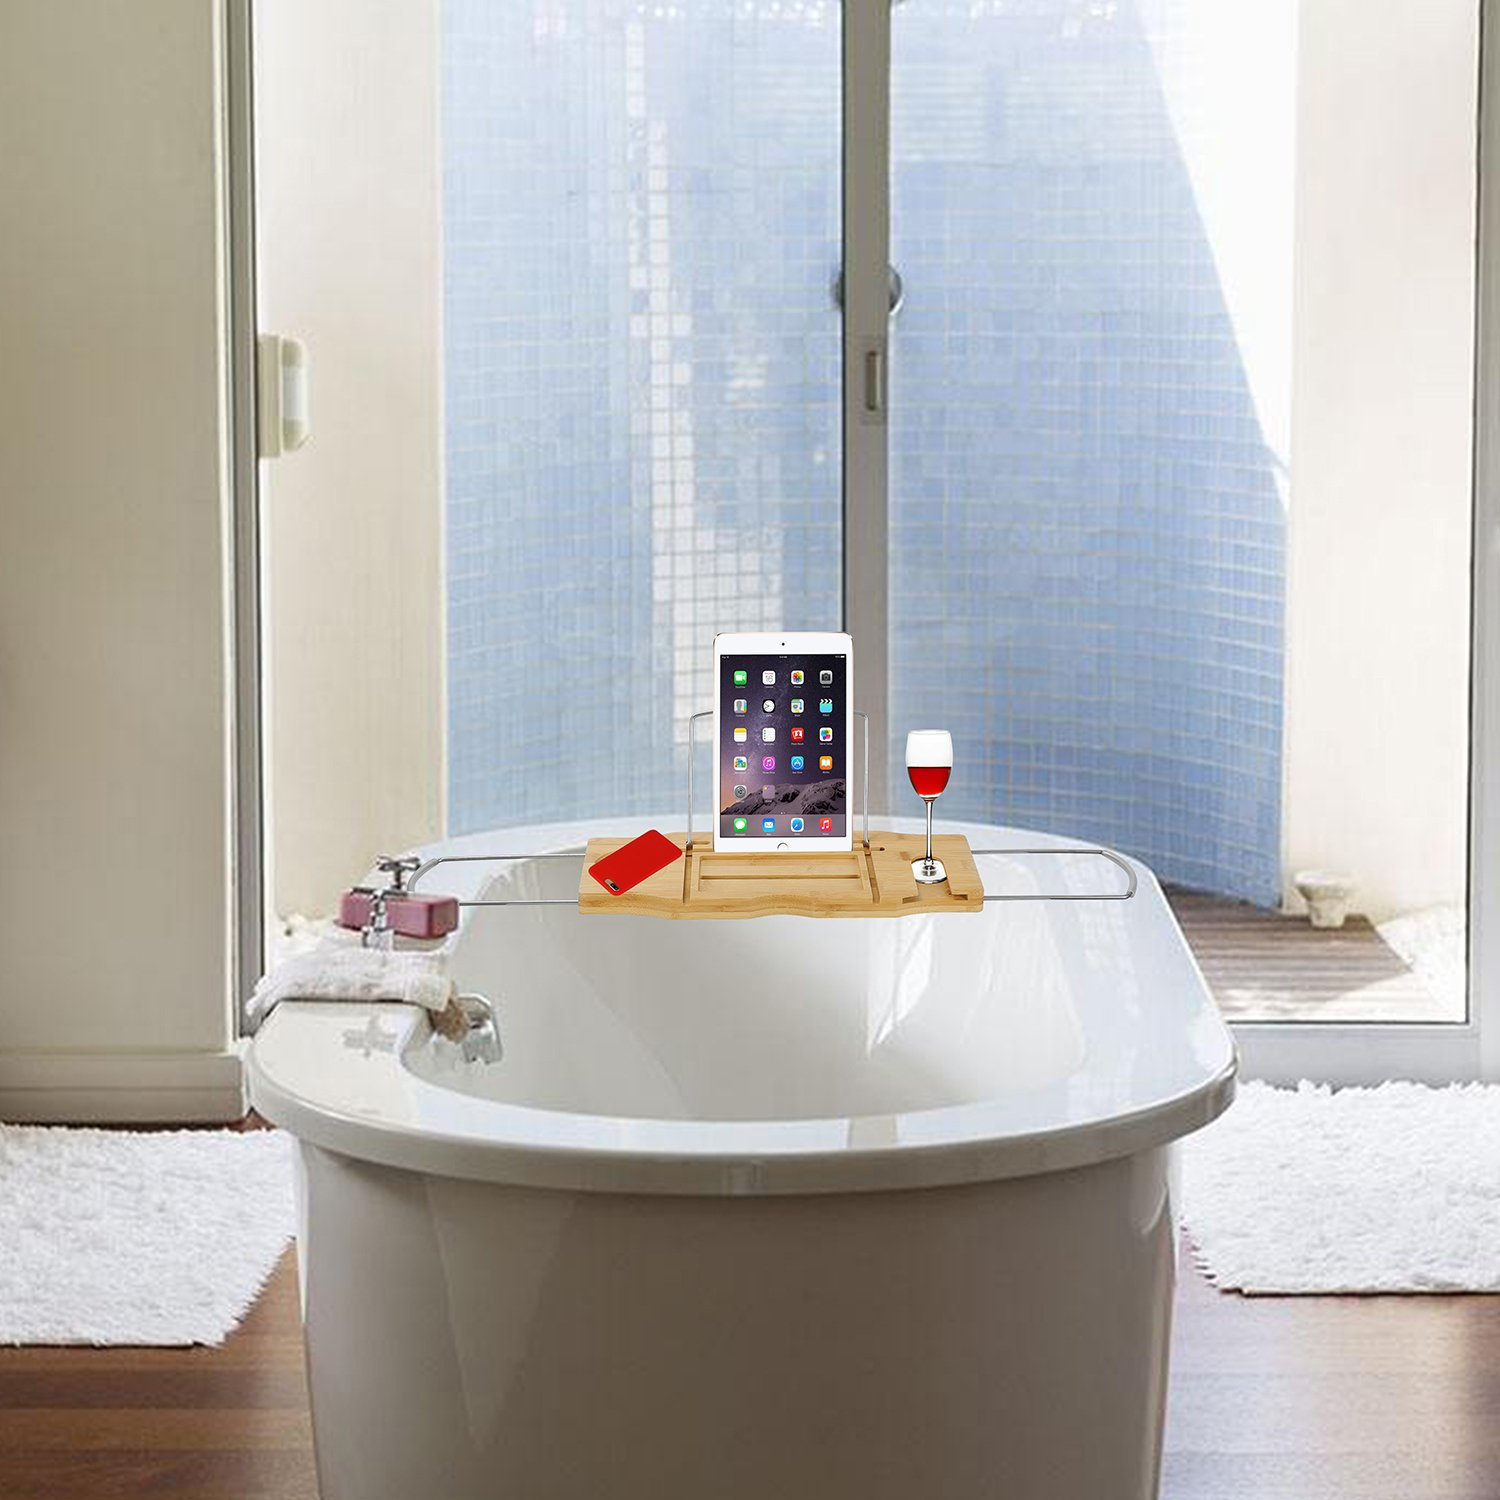 Amazon.com: Utoplike Extendable Bamboo Bathtub Caddy Tray Bathtub ...